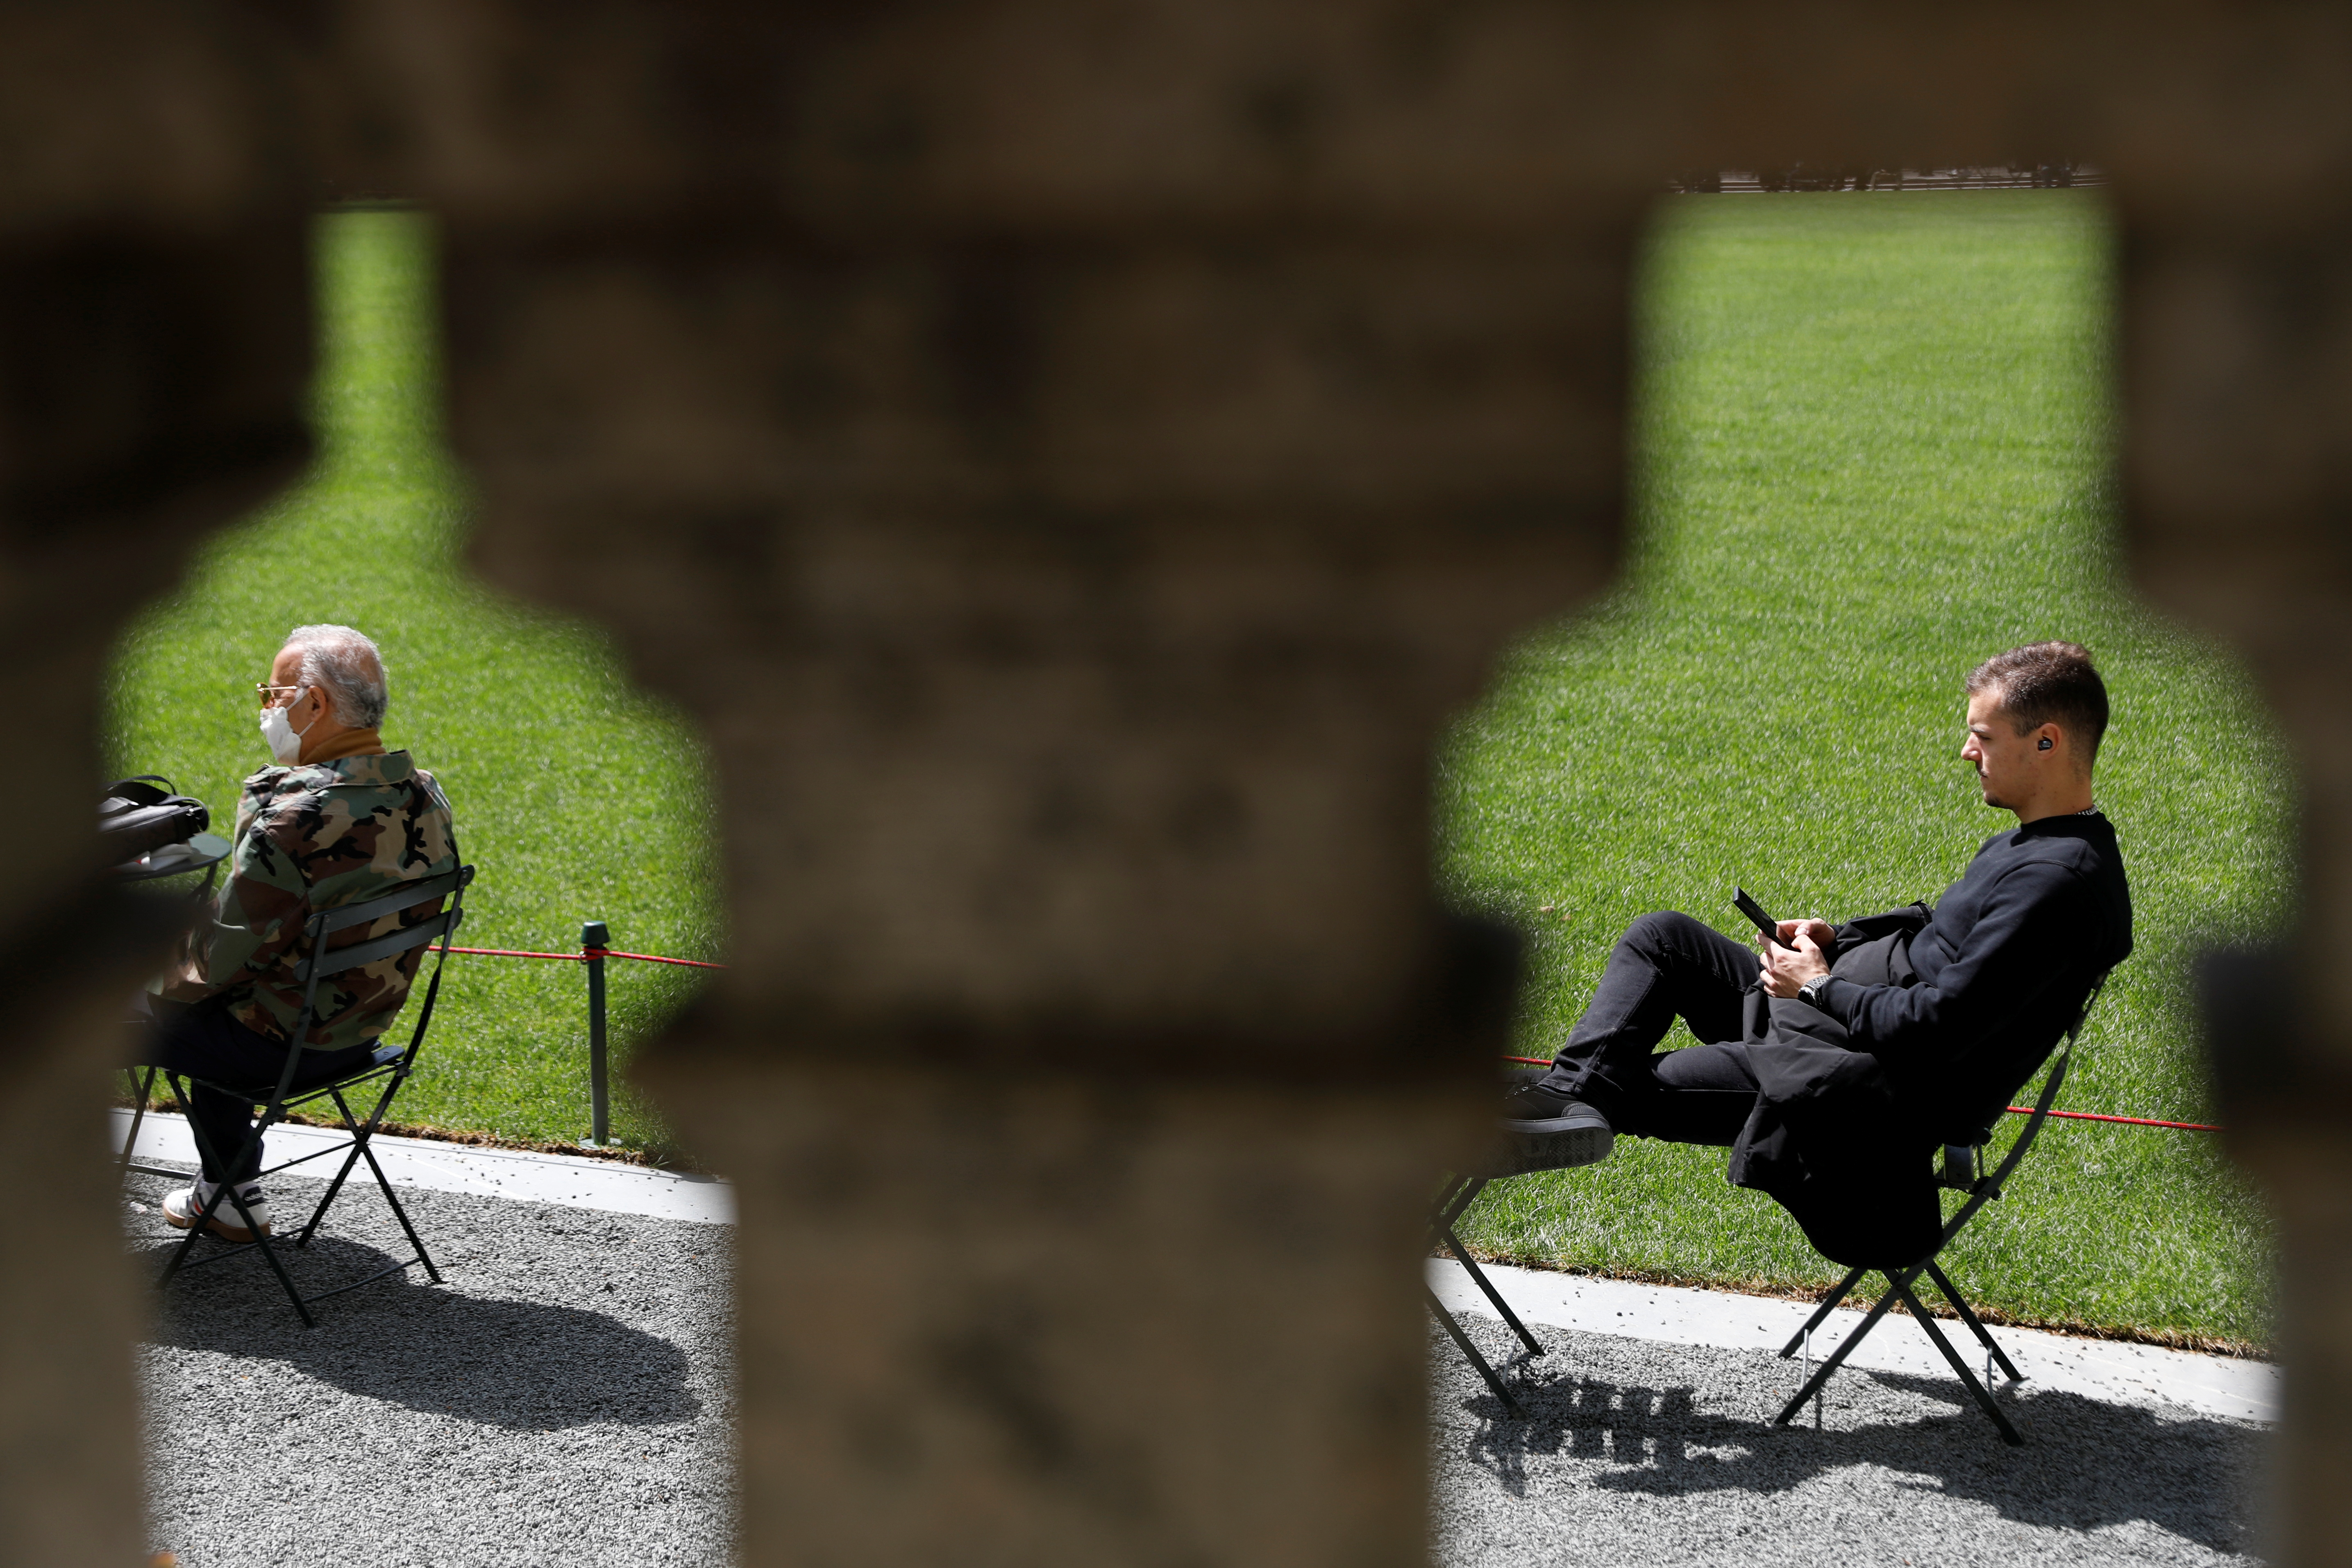 People sit in Bryant Park after the Centers for Disease Control and Prevention (CDC) announced new guidelines regarding outdoor mask wearing and vaccination during the outbreak of the coronavirus disease (COVID-19) in Manhattan, New York City, New York, U.S., April 27, 2021. REUTERS/Andrew Kelly